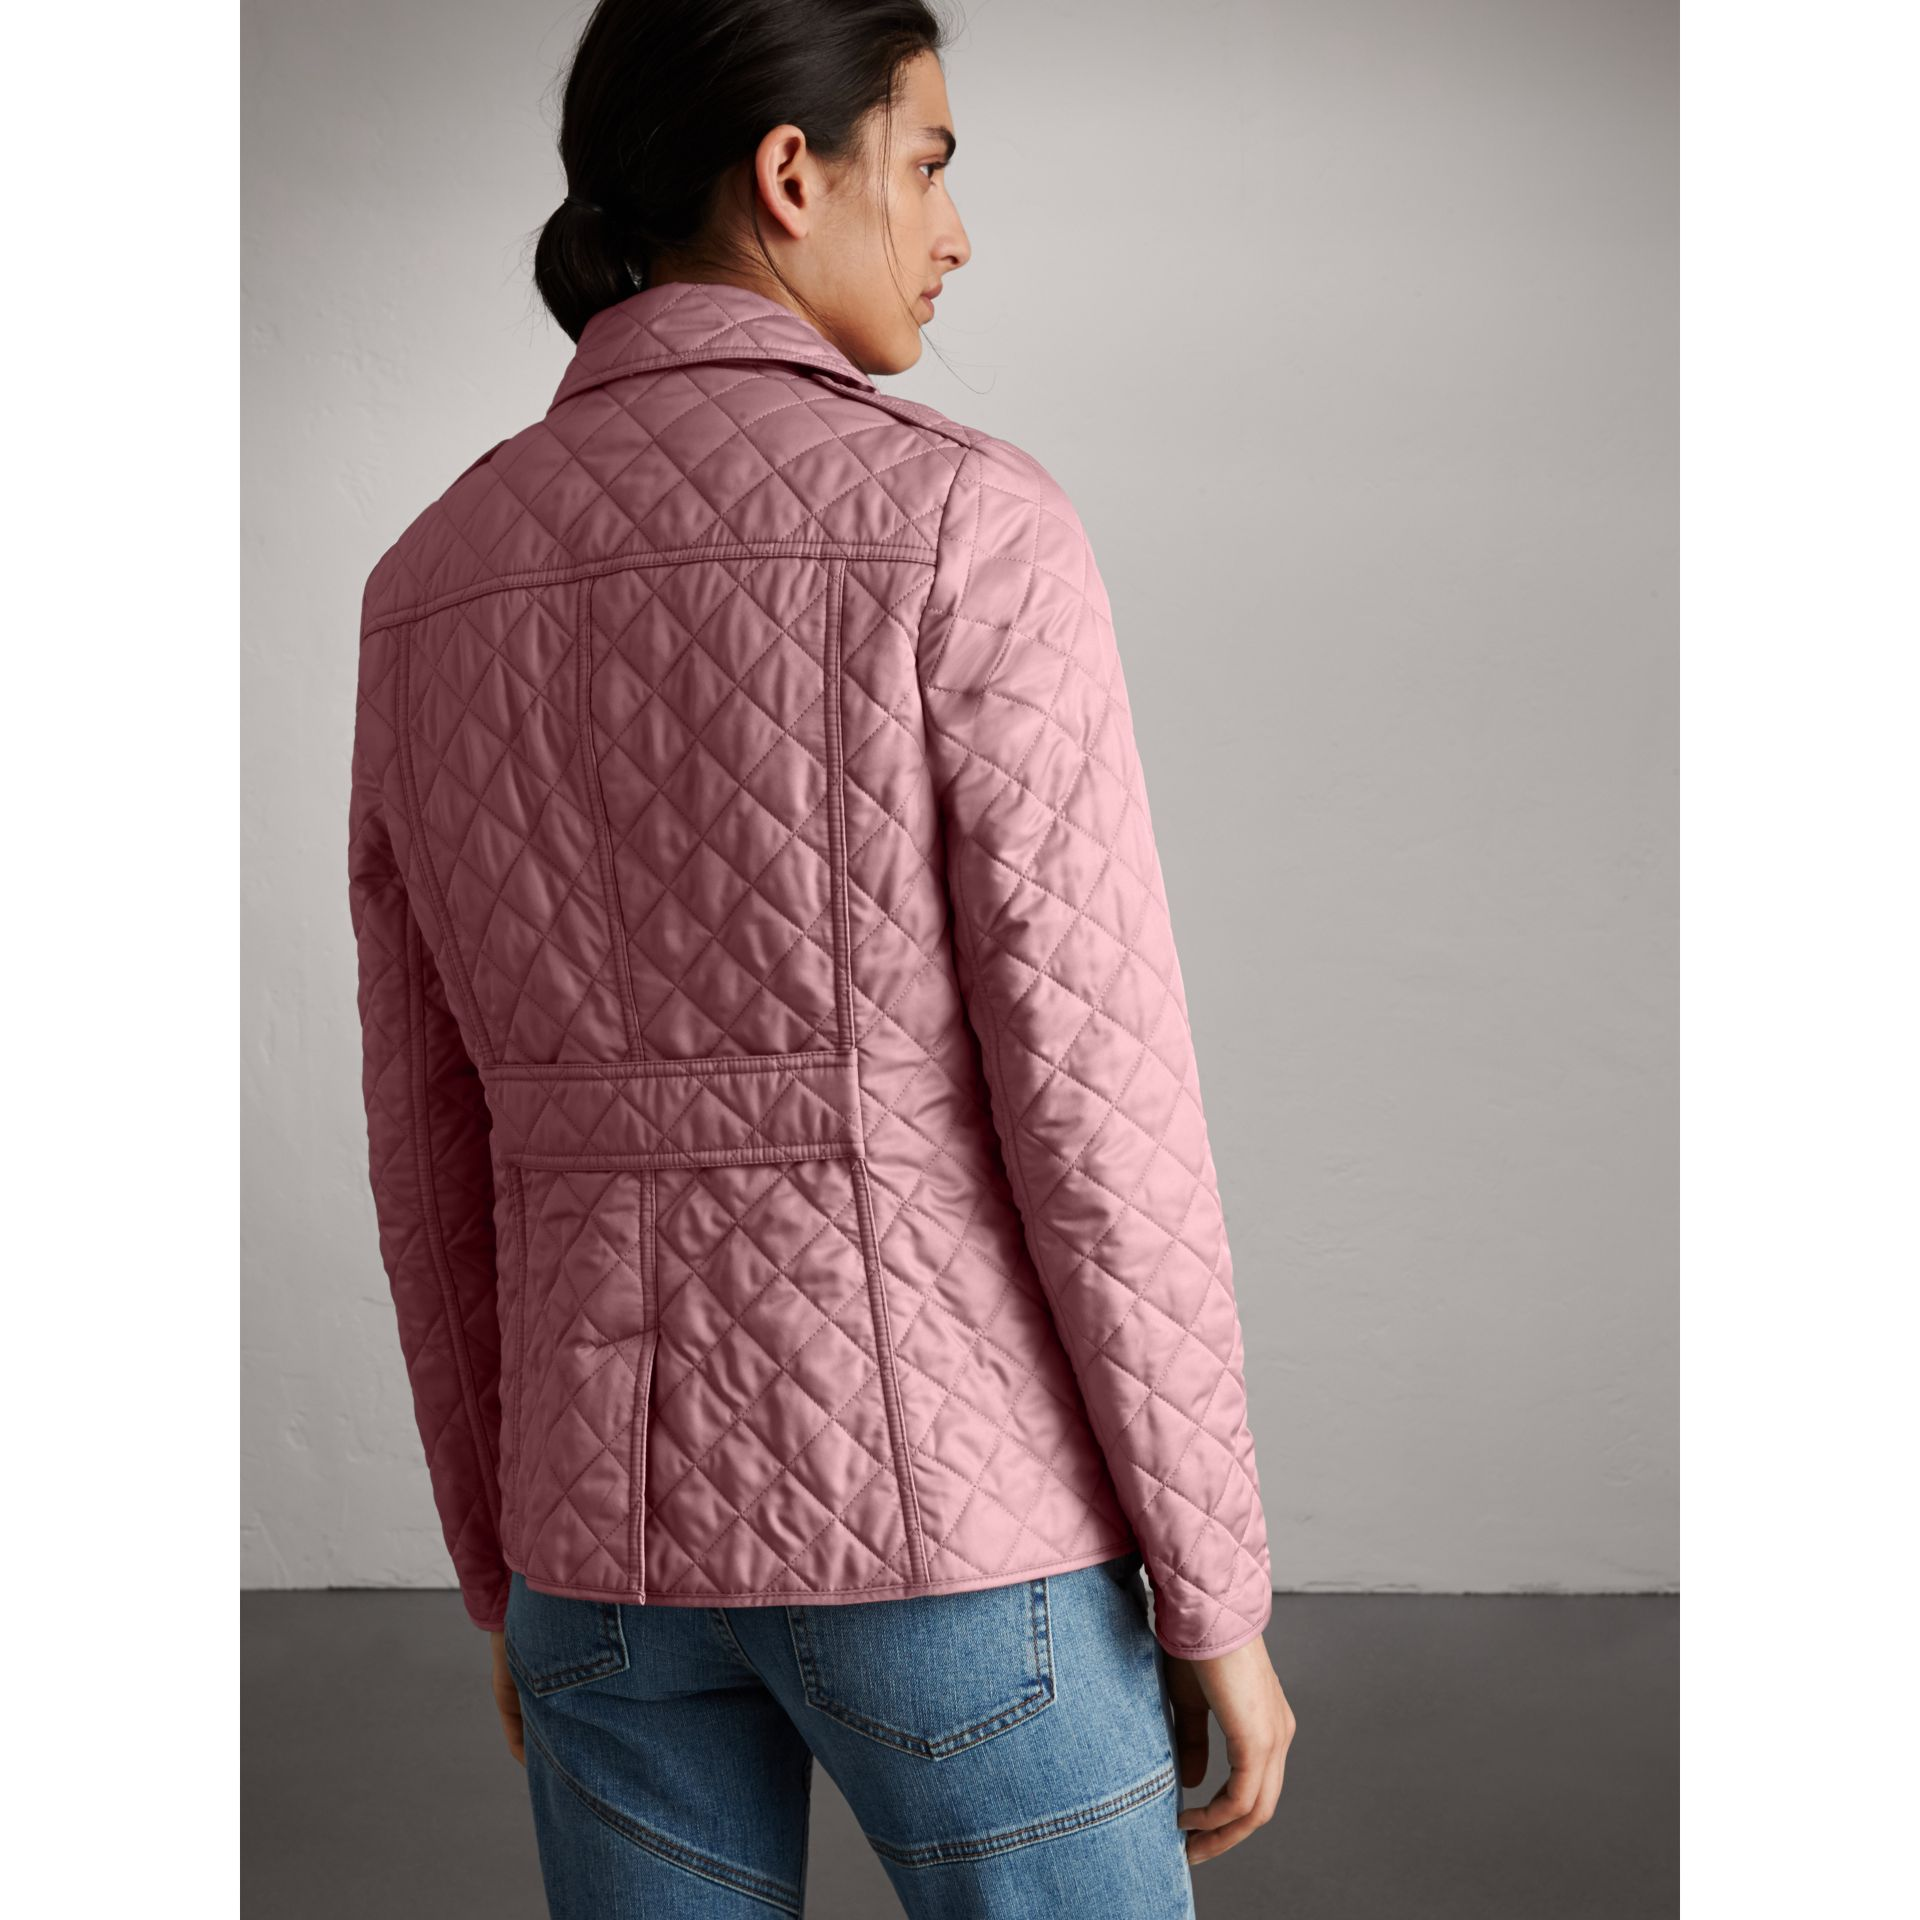 Diamond Quilted Jacket in Vintage Rose - Women | Burberry Canada - gallery image 3